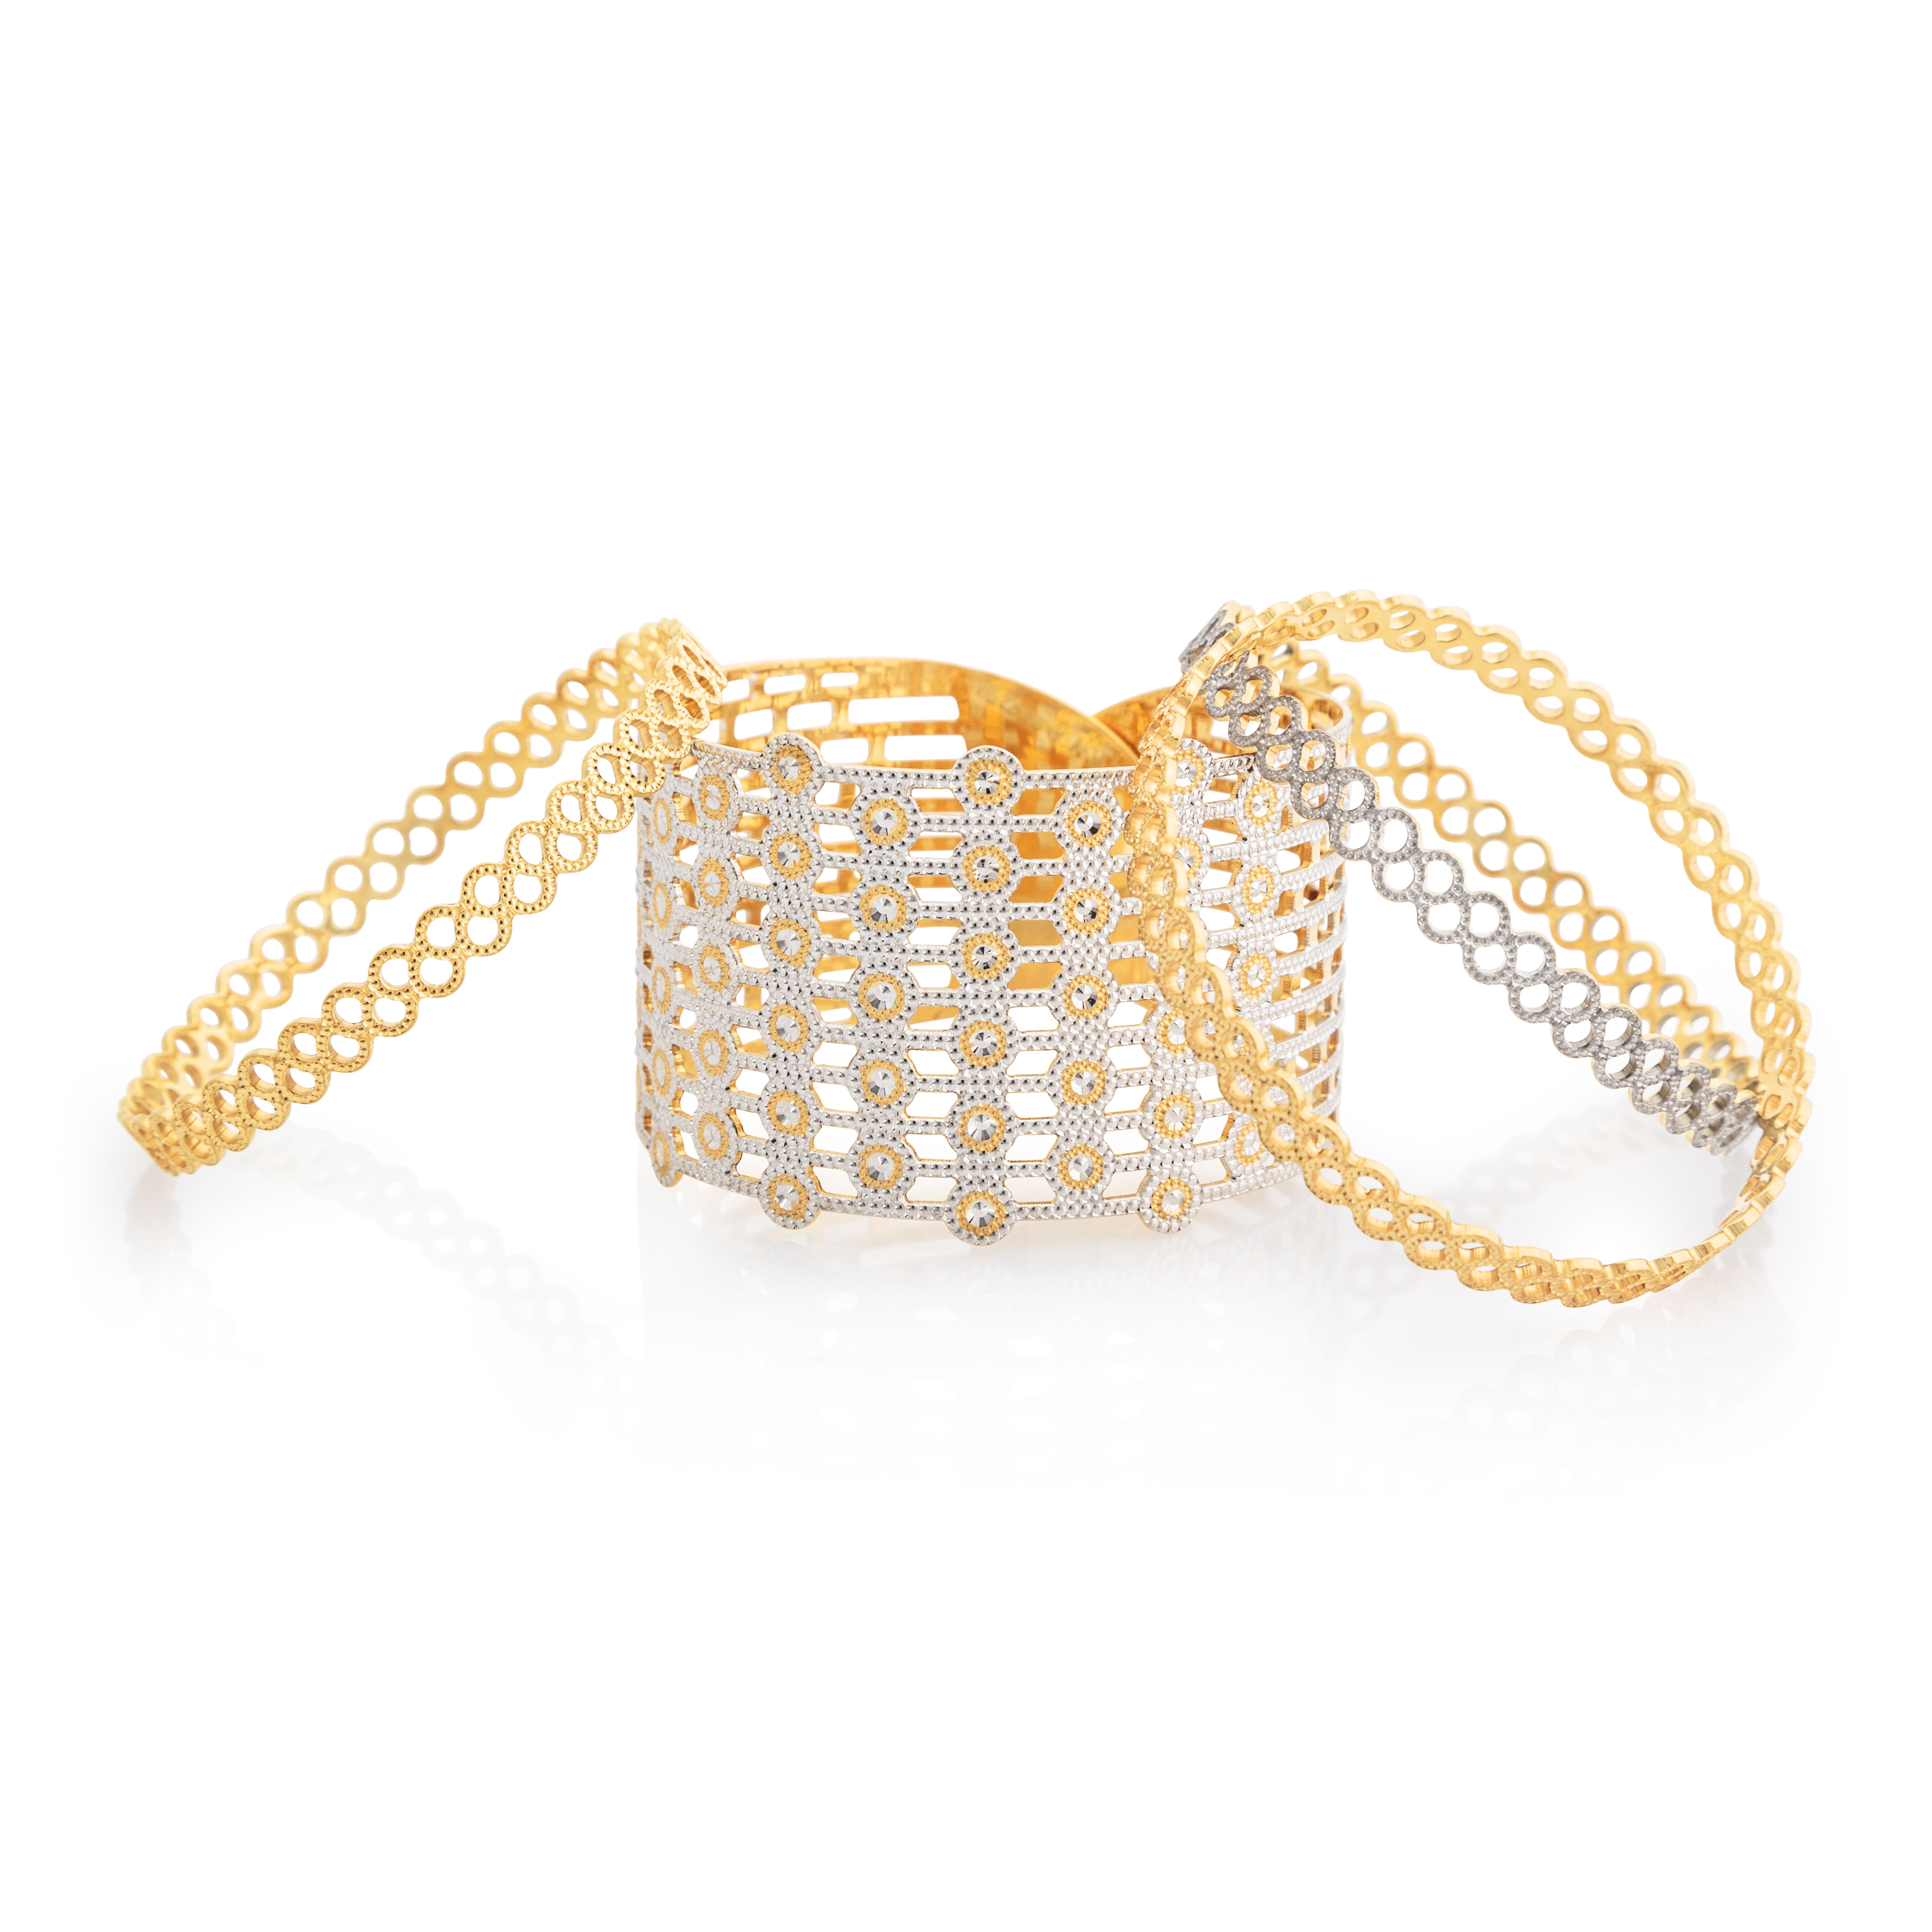 Reimagine craftsmanship with breath taking gold bracelets and